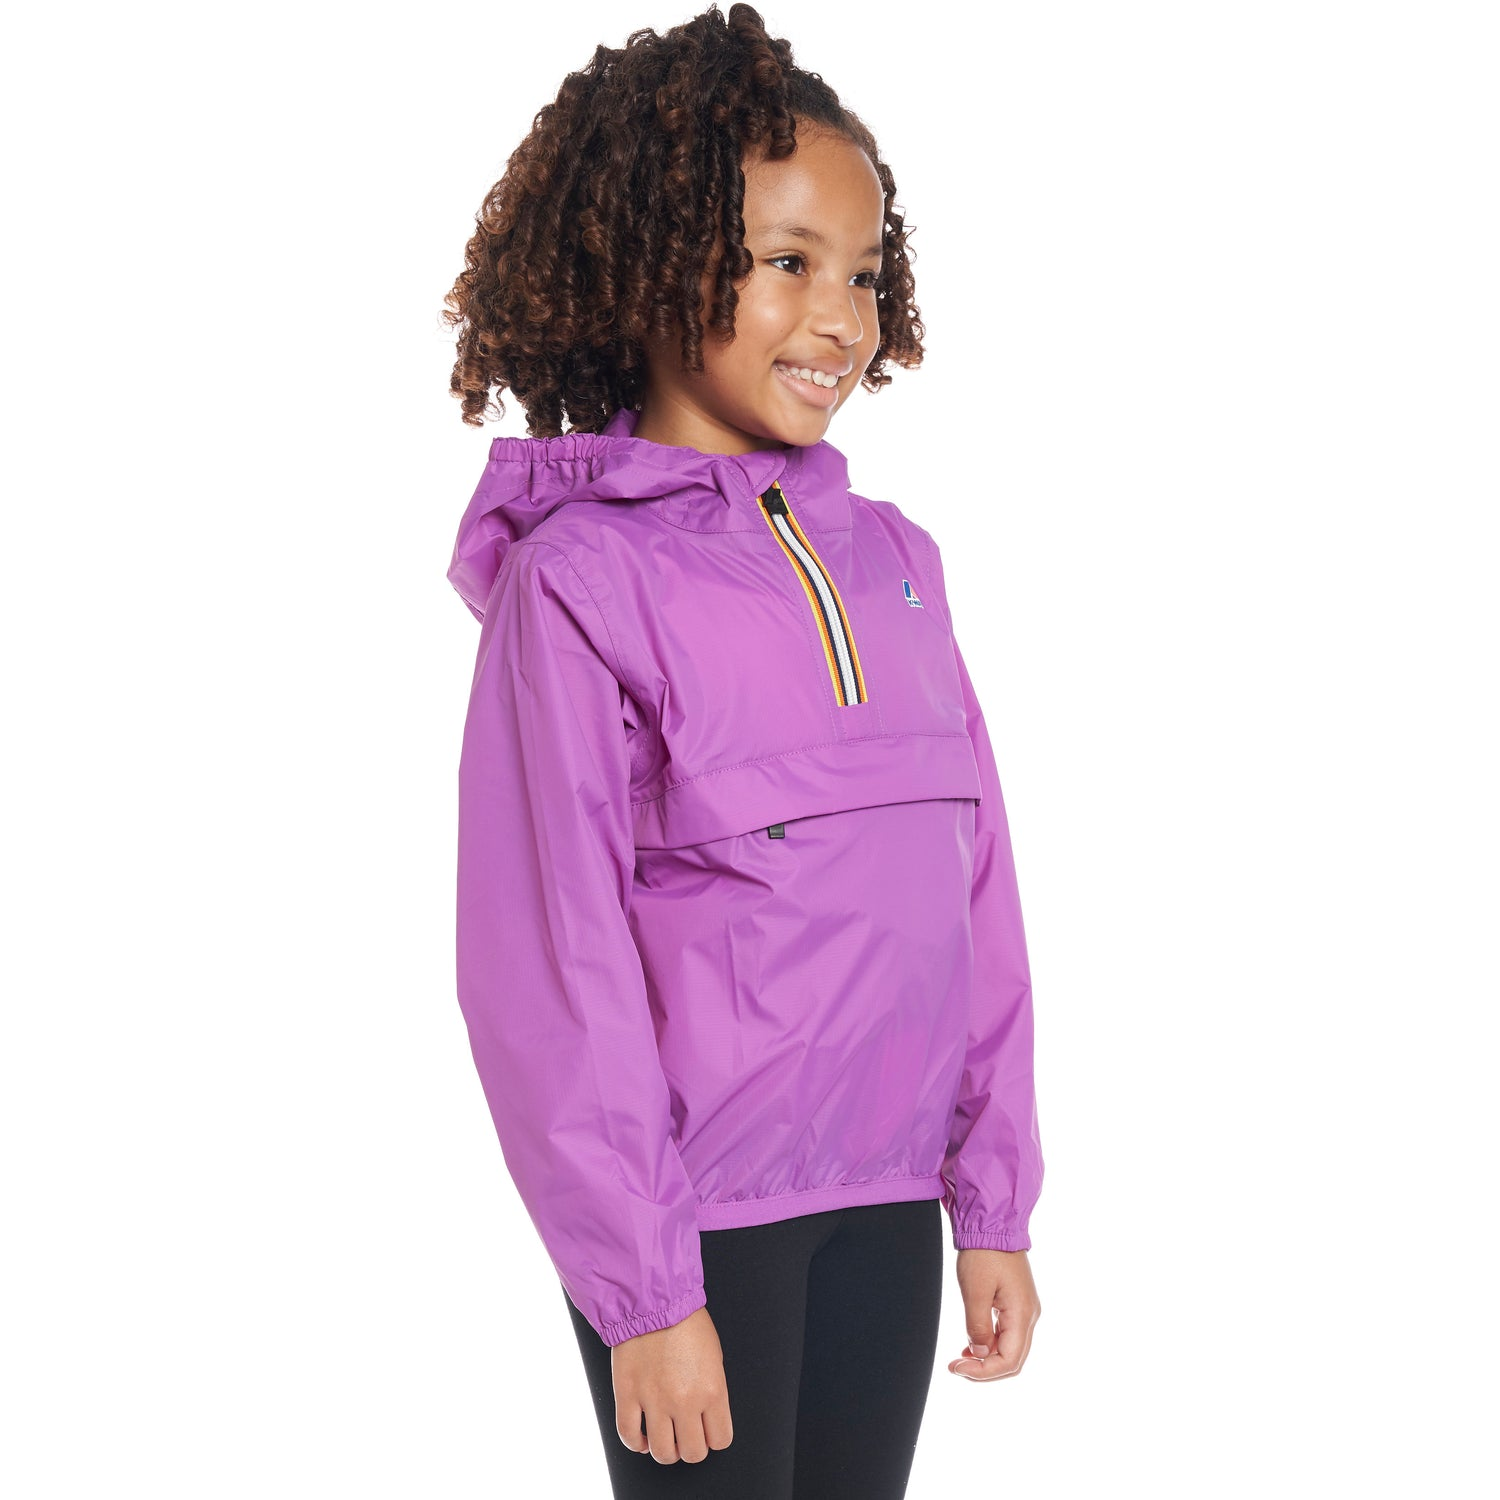 Kids Le Vrai 3.0 Leon Jacket Violet - Side